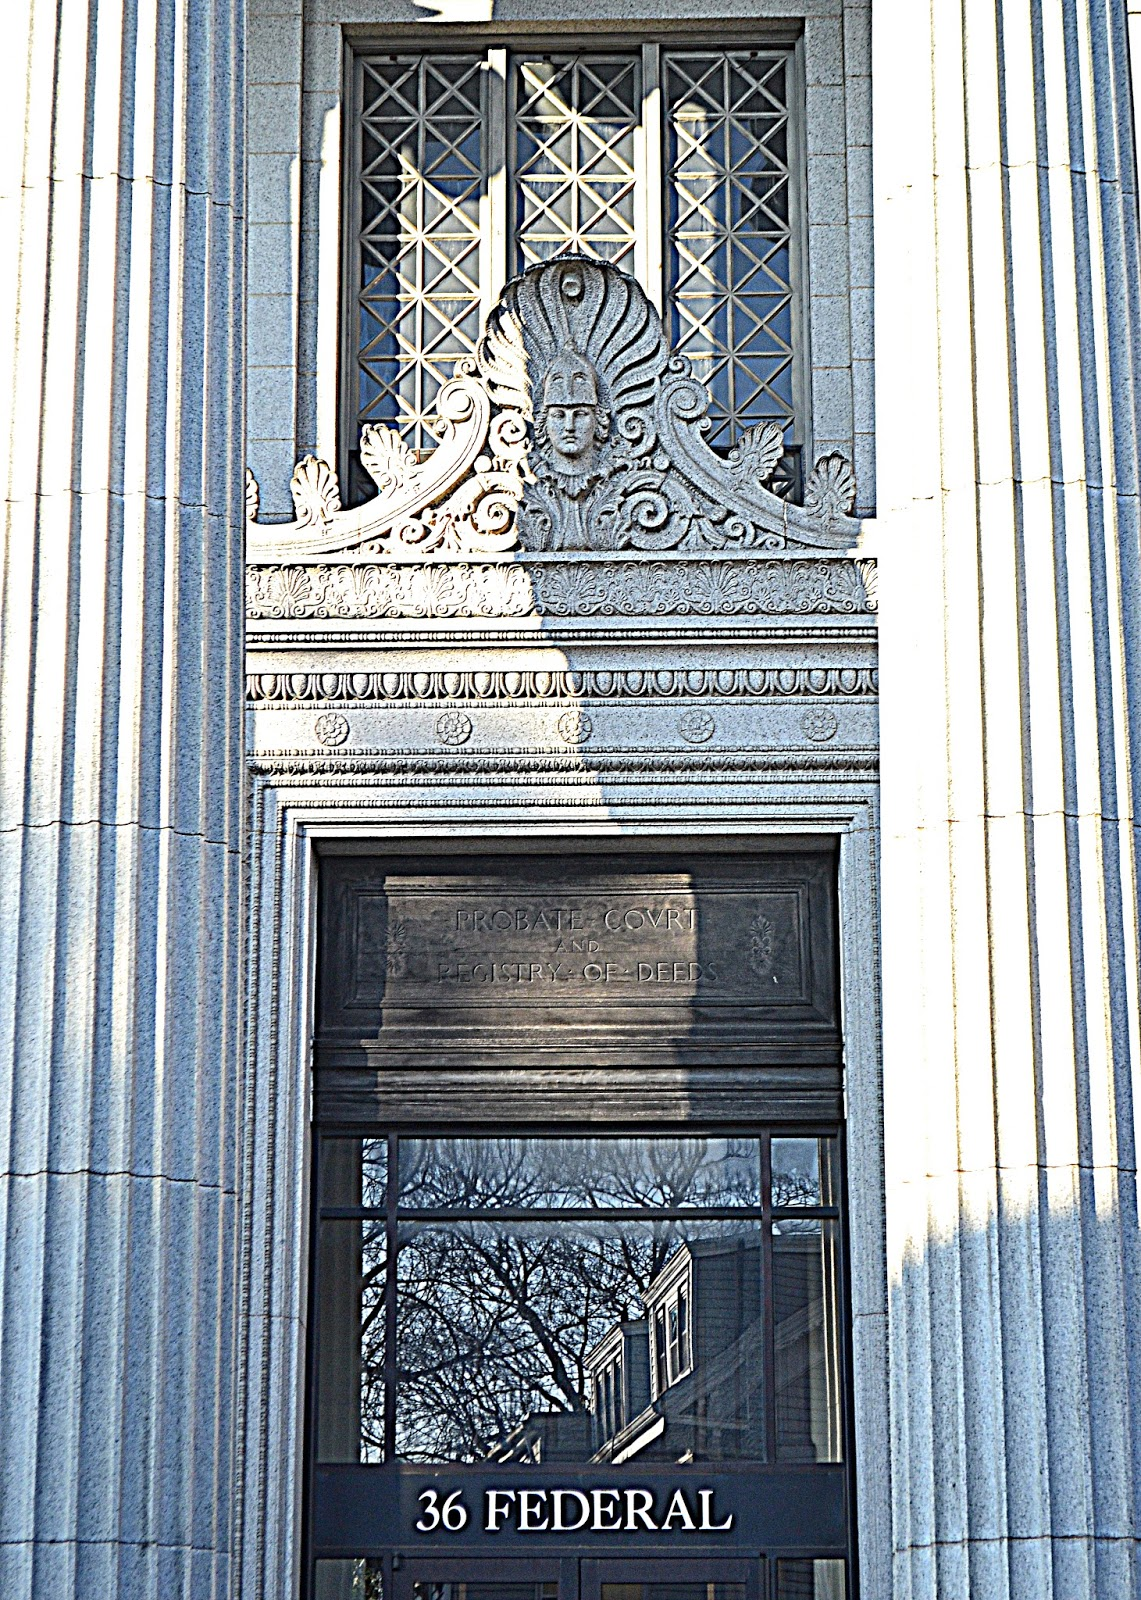 court, courthouse, shadow, columns, granite, gray, figurehead, bust